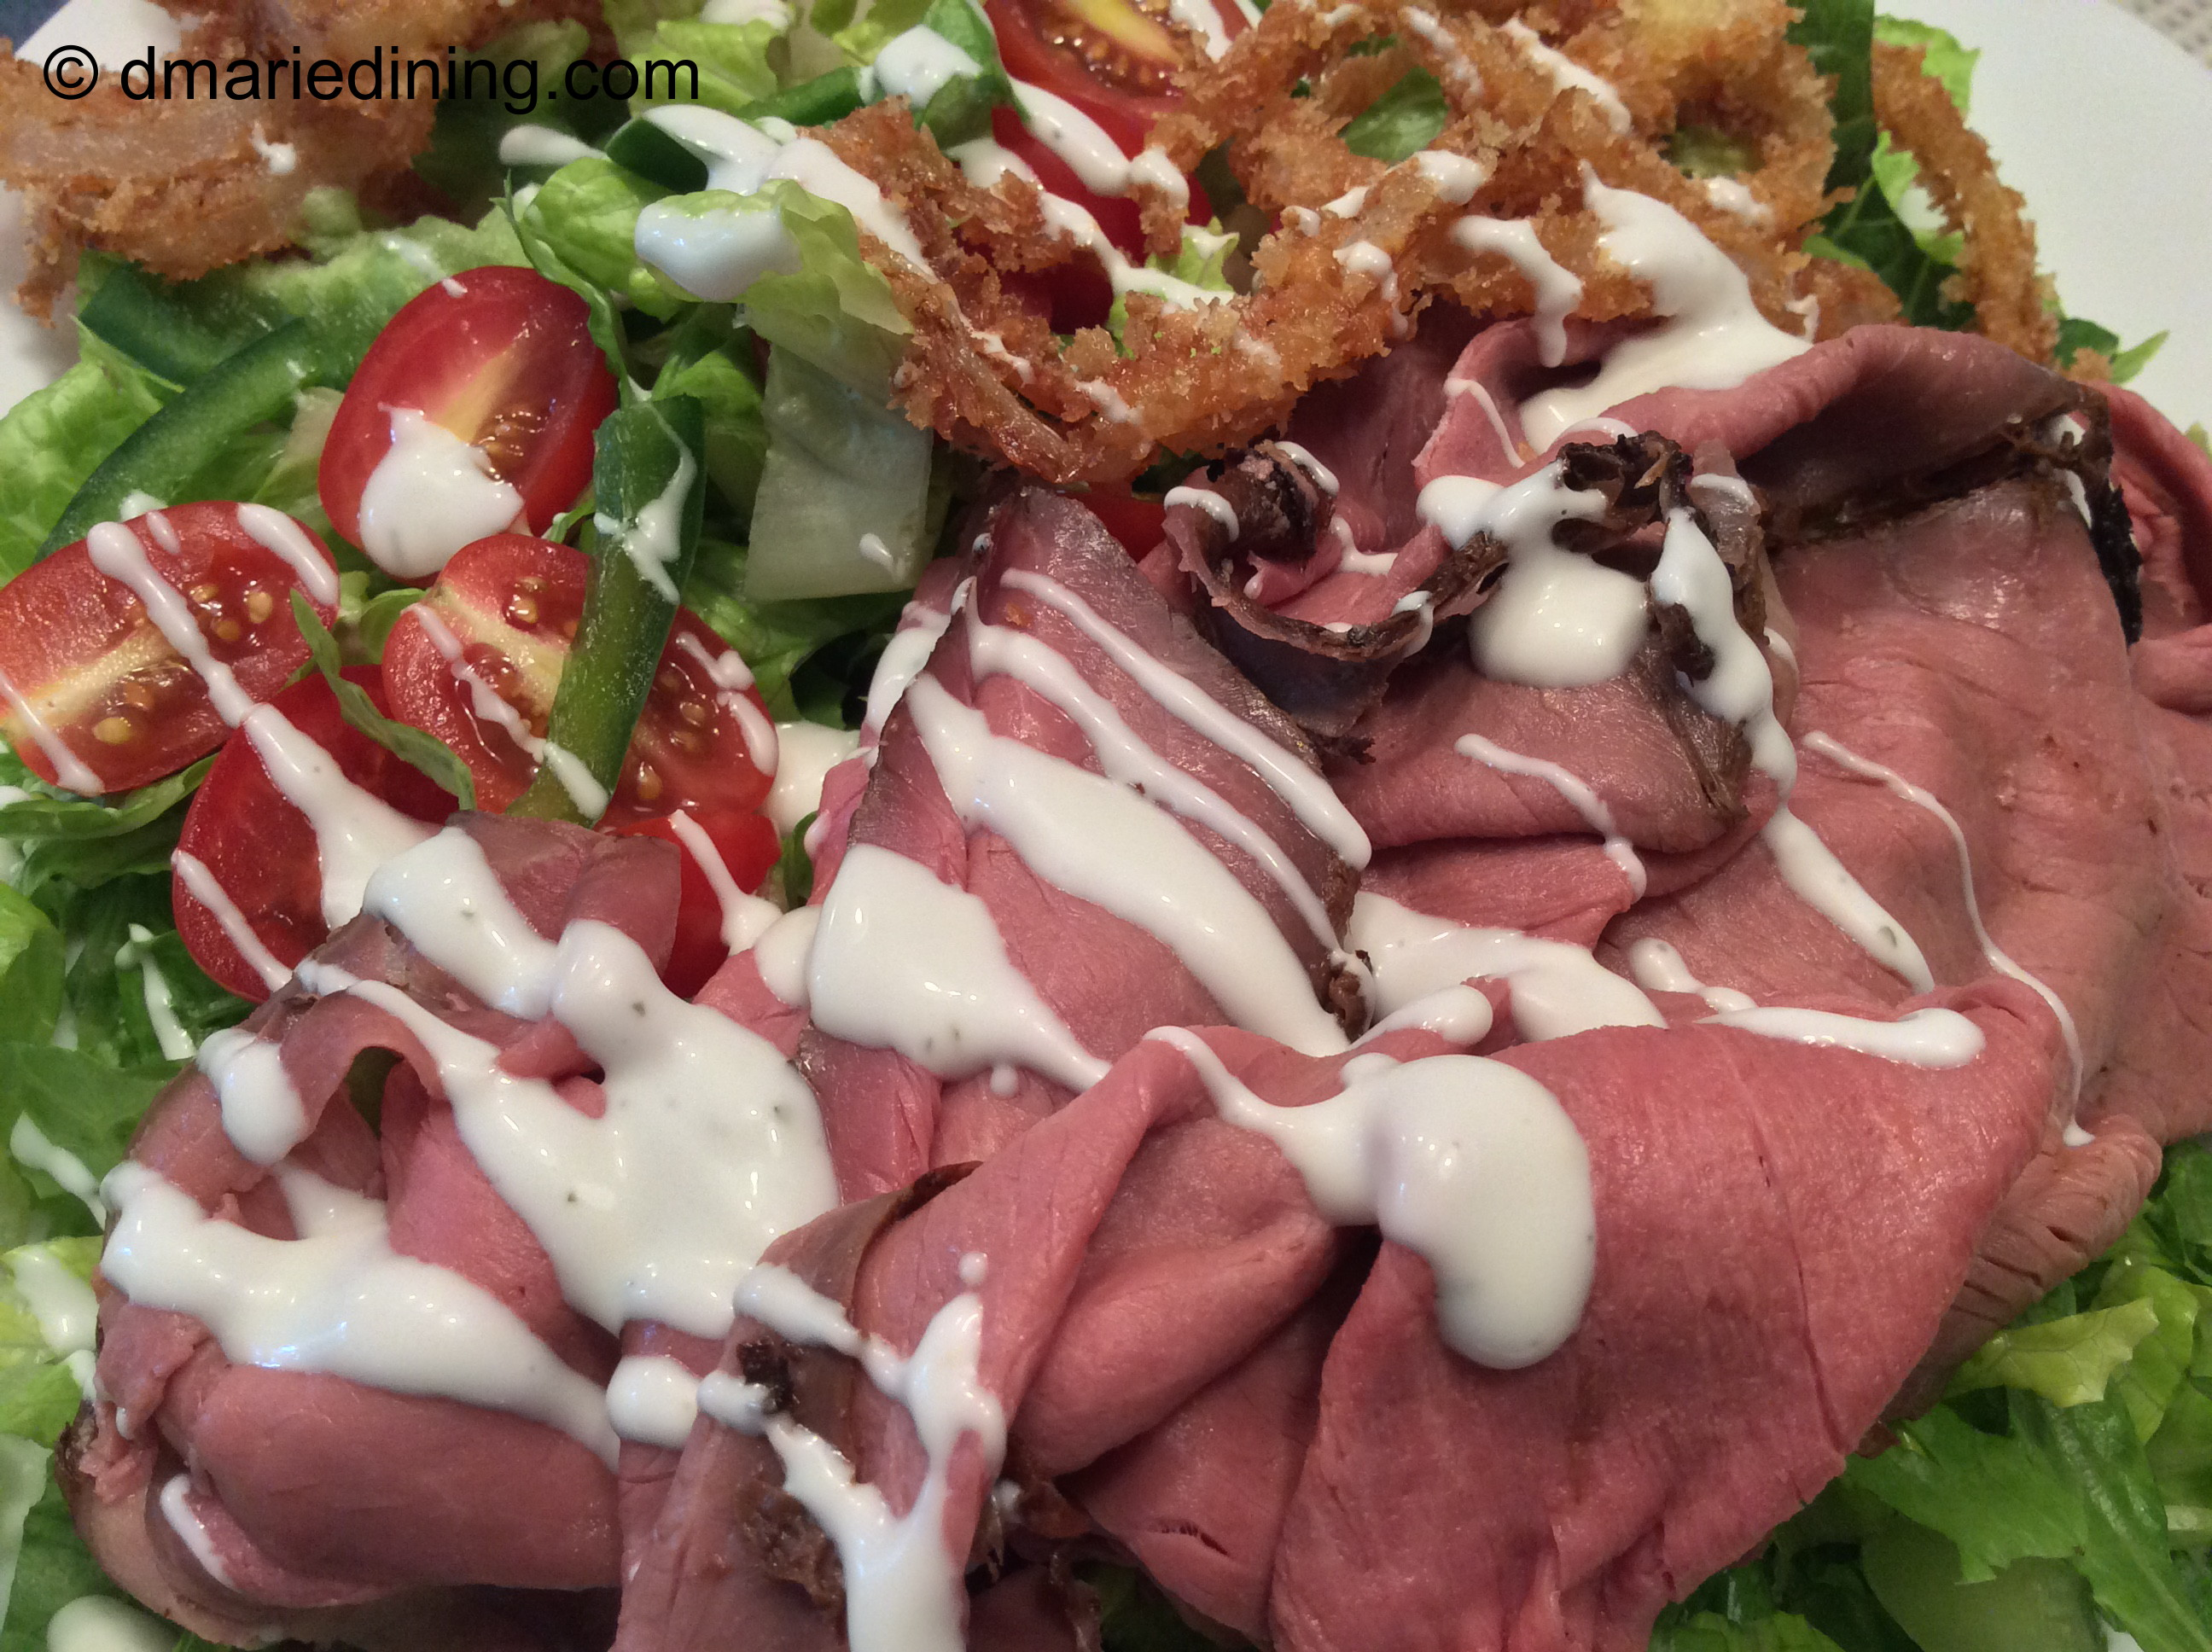 London Broil Salad with Crispy Fried Onions | dmarie-dining